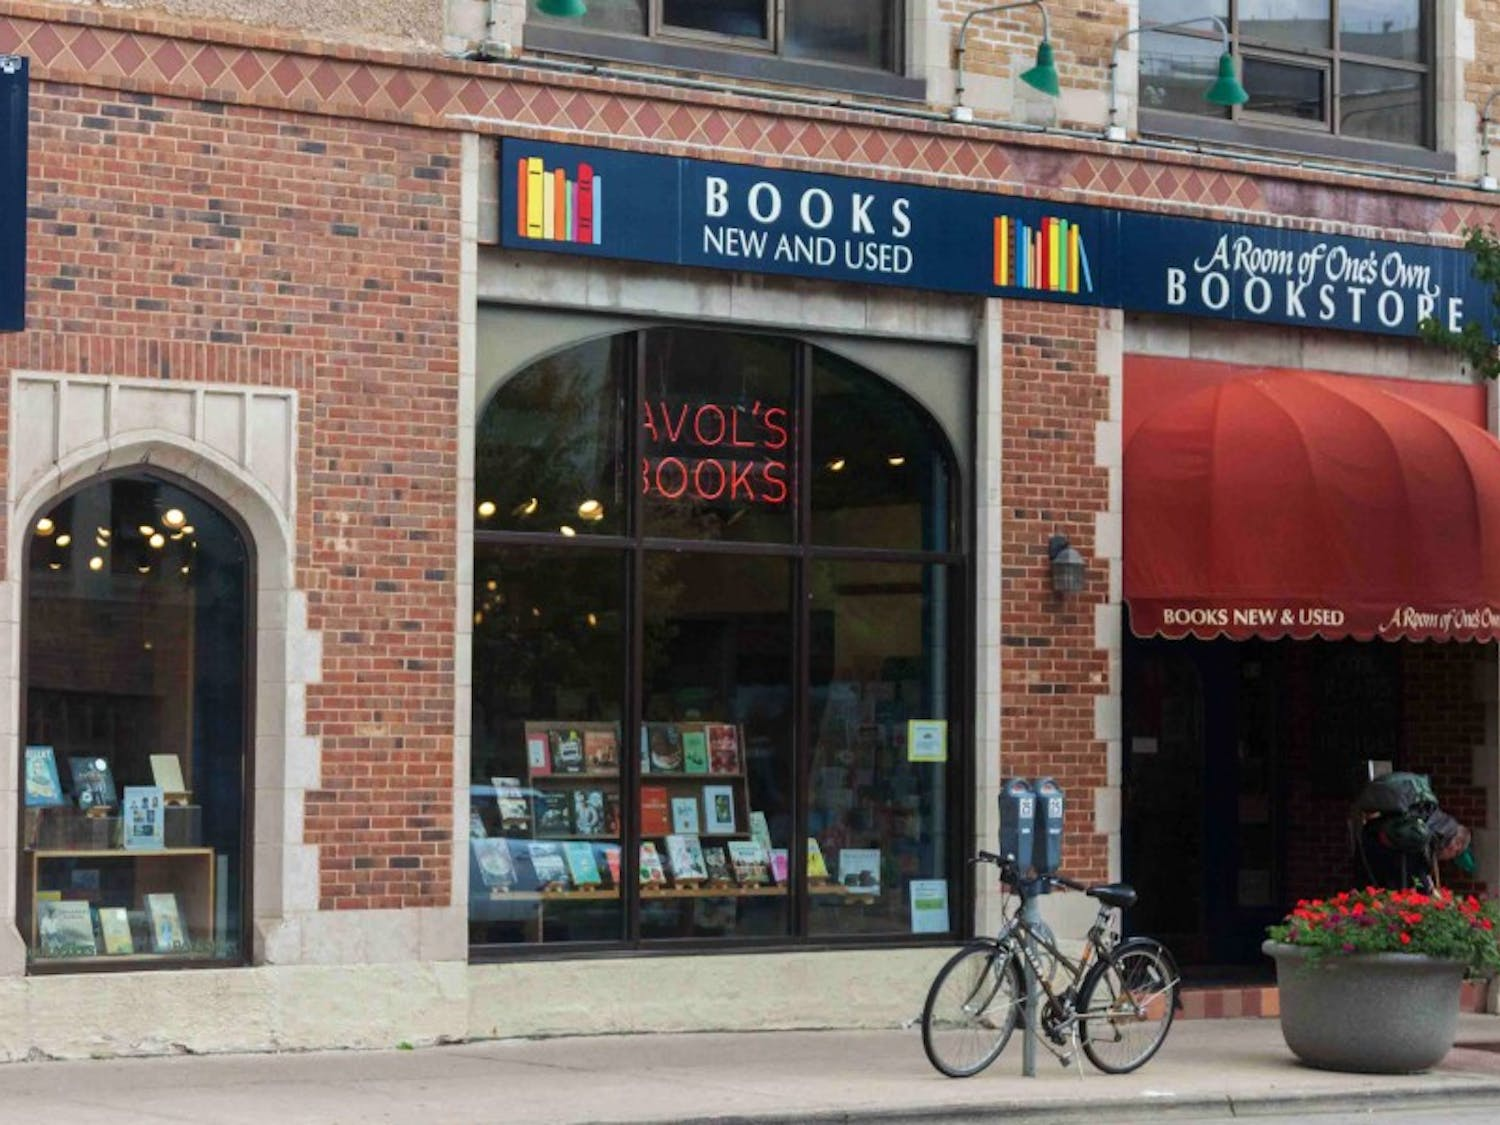 The owners of A Room of One's Own, Madison's independent feminist bookstore, announced in 2016 they are looking to sell their business.